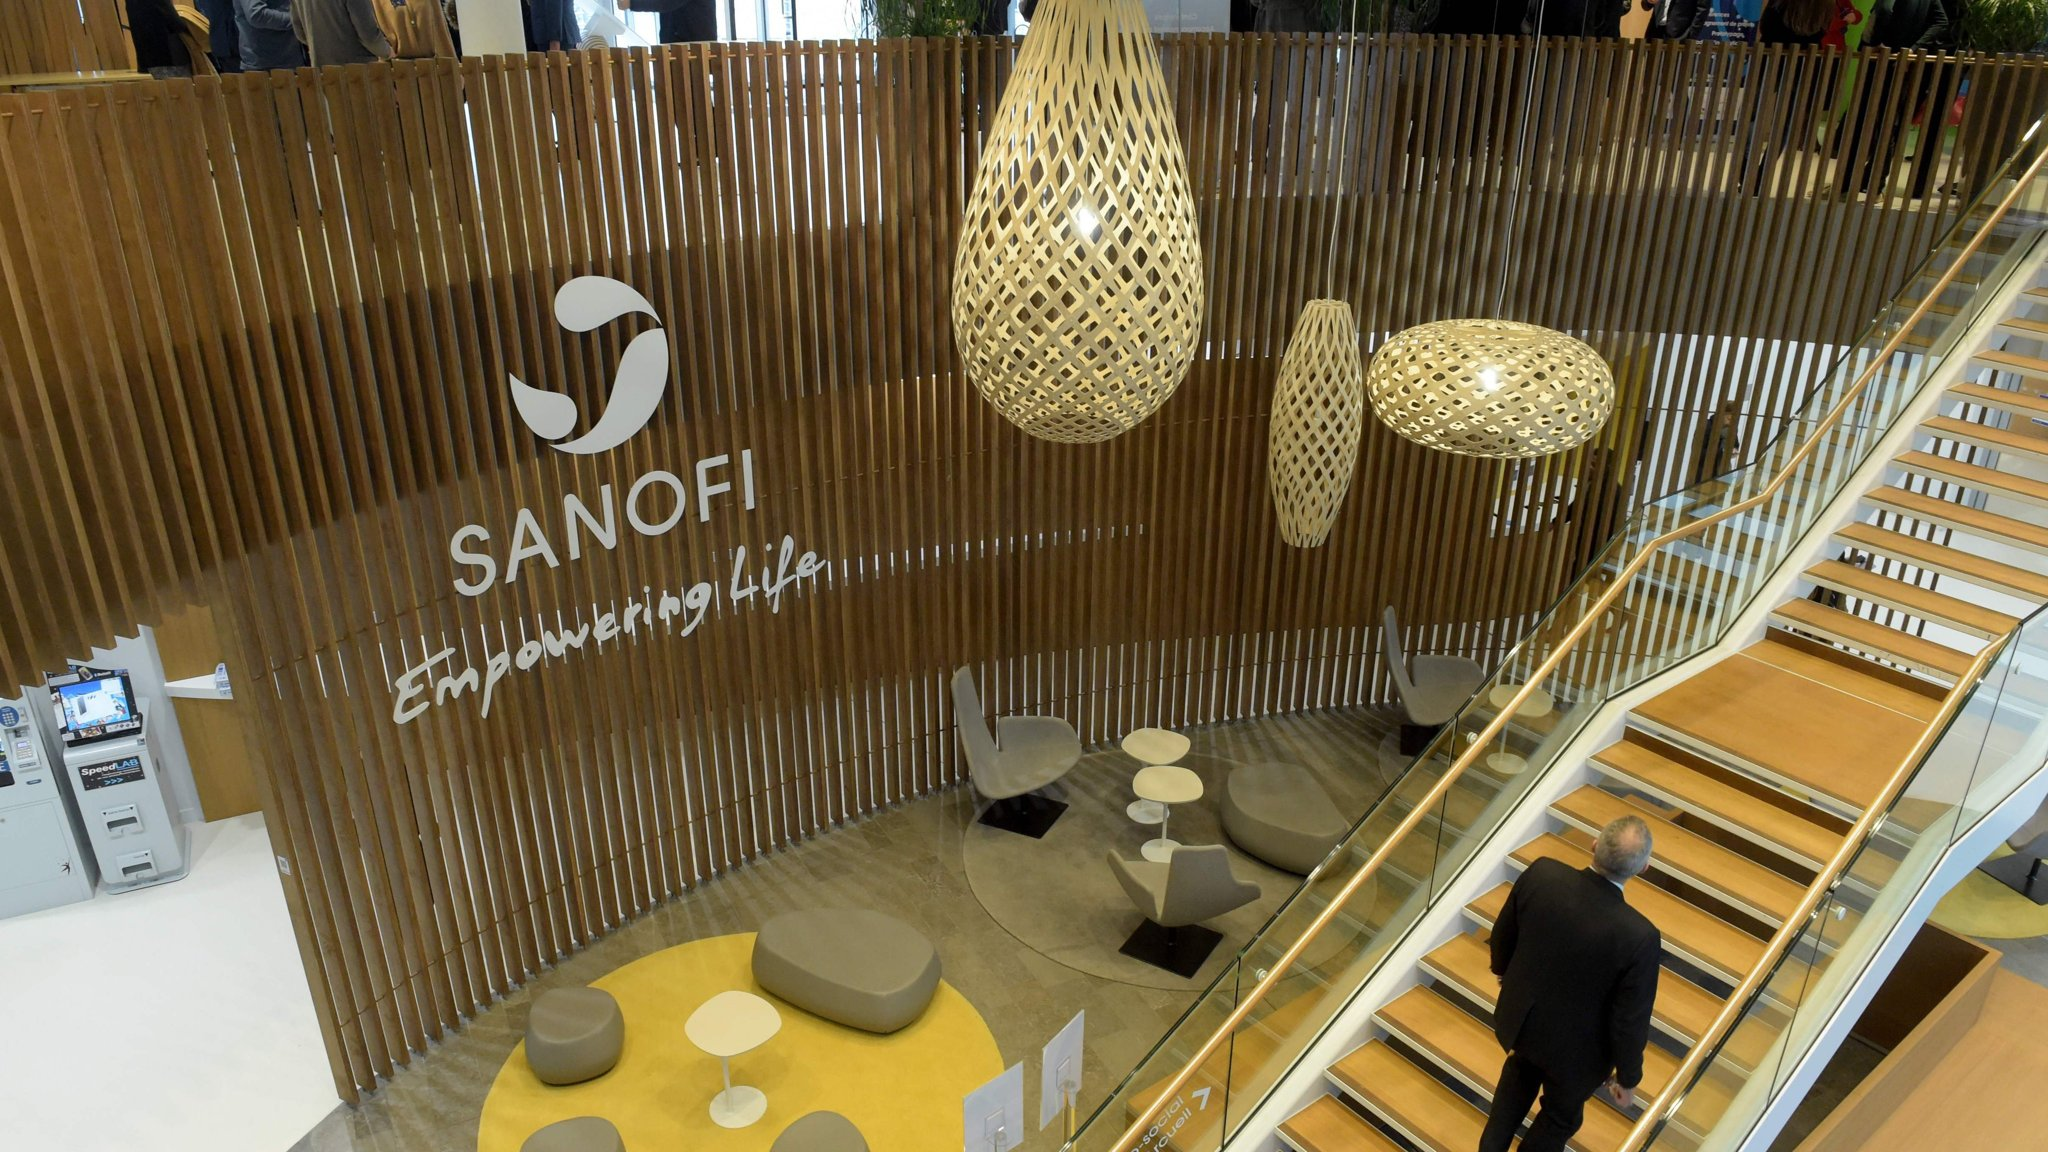 Sanofi in $11.6bn acquisition of US biotech group Bioverativ